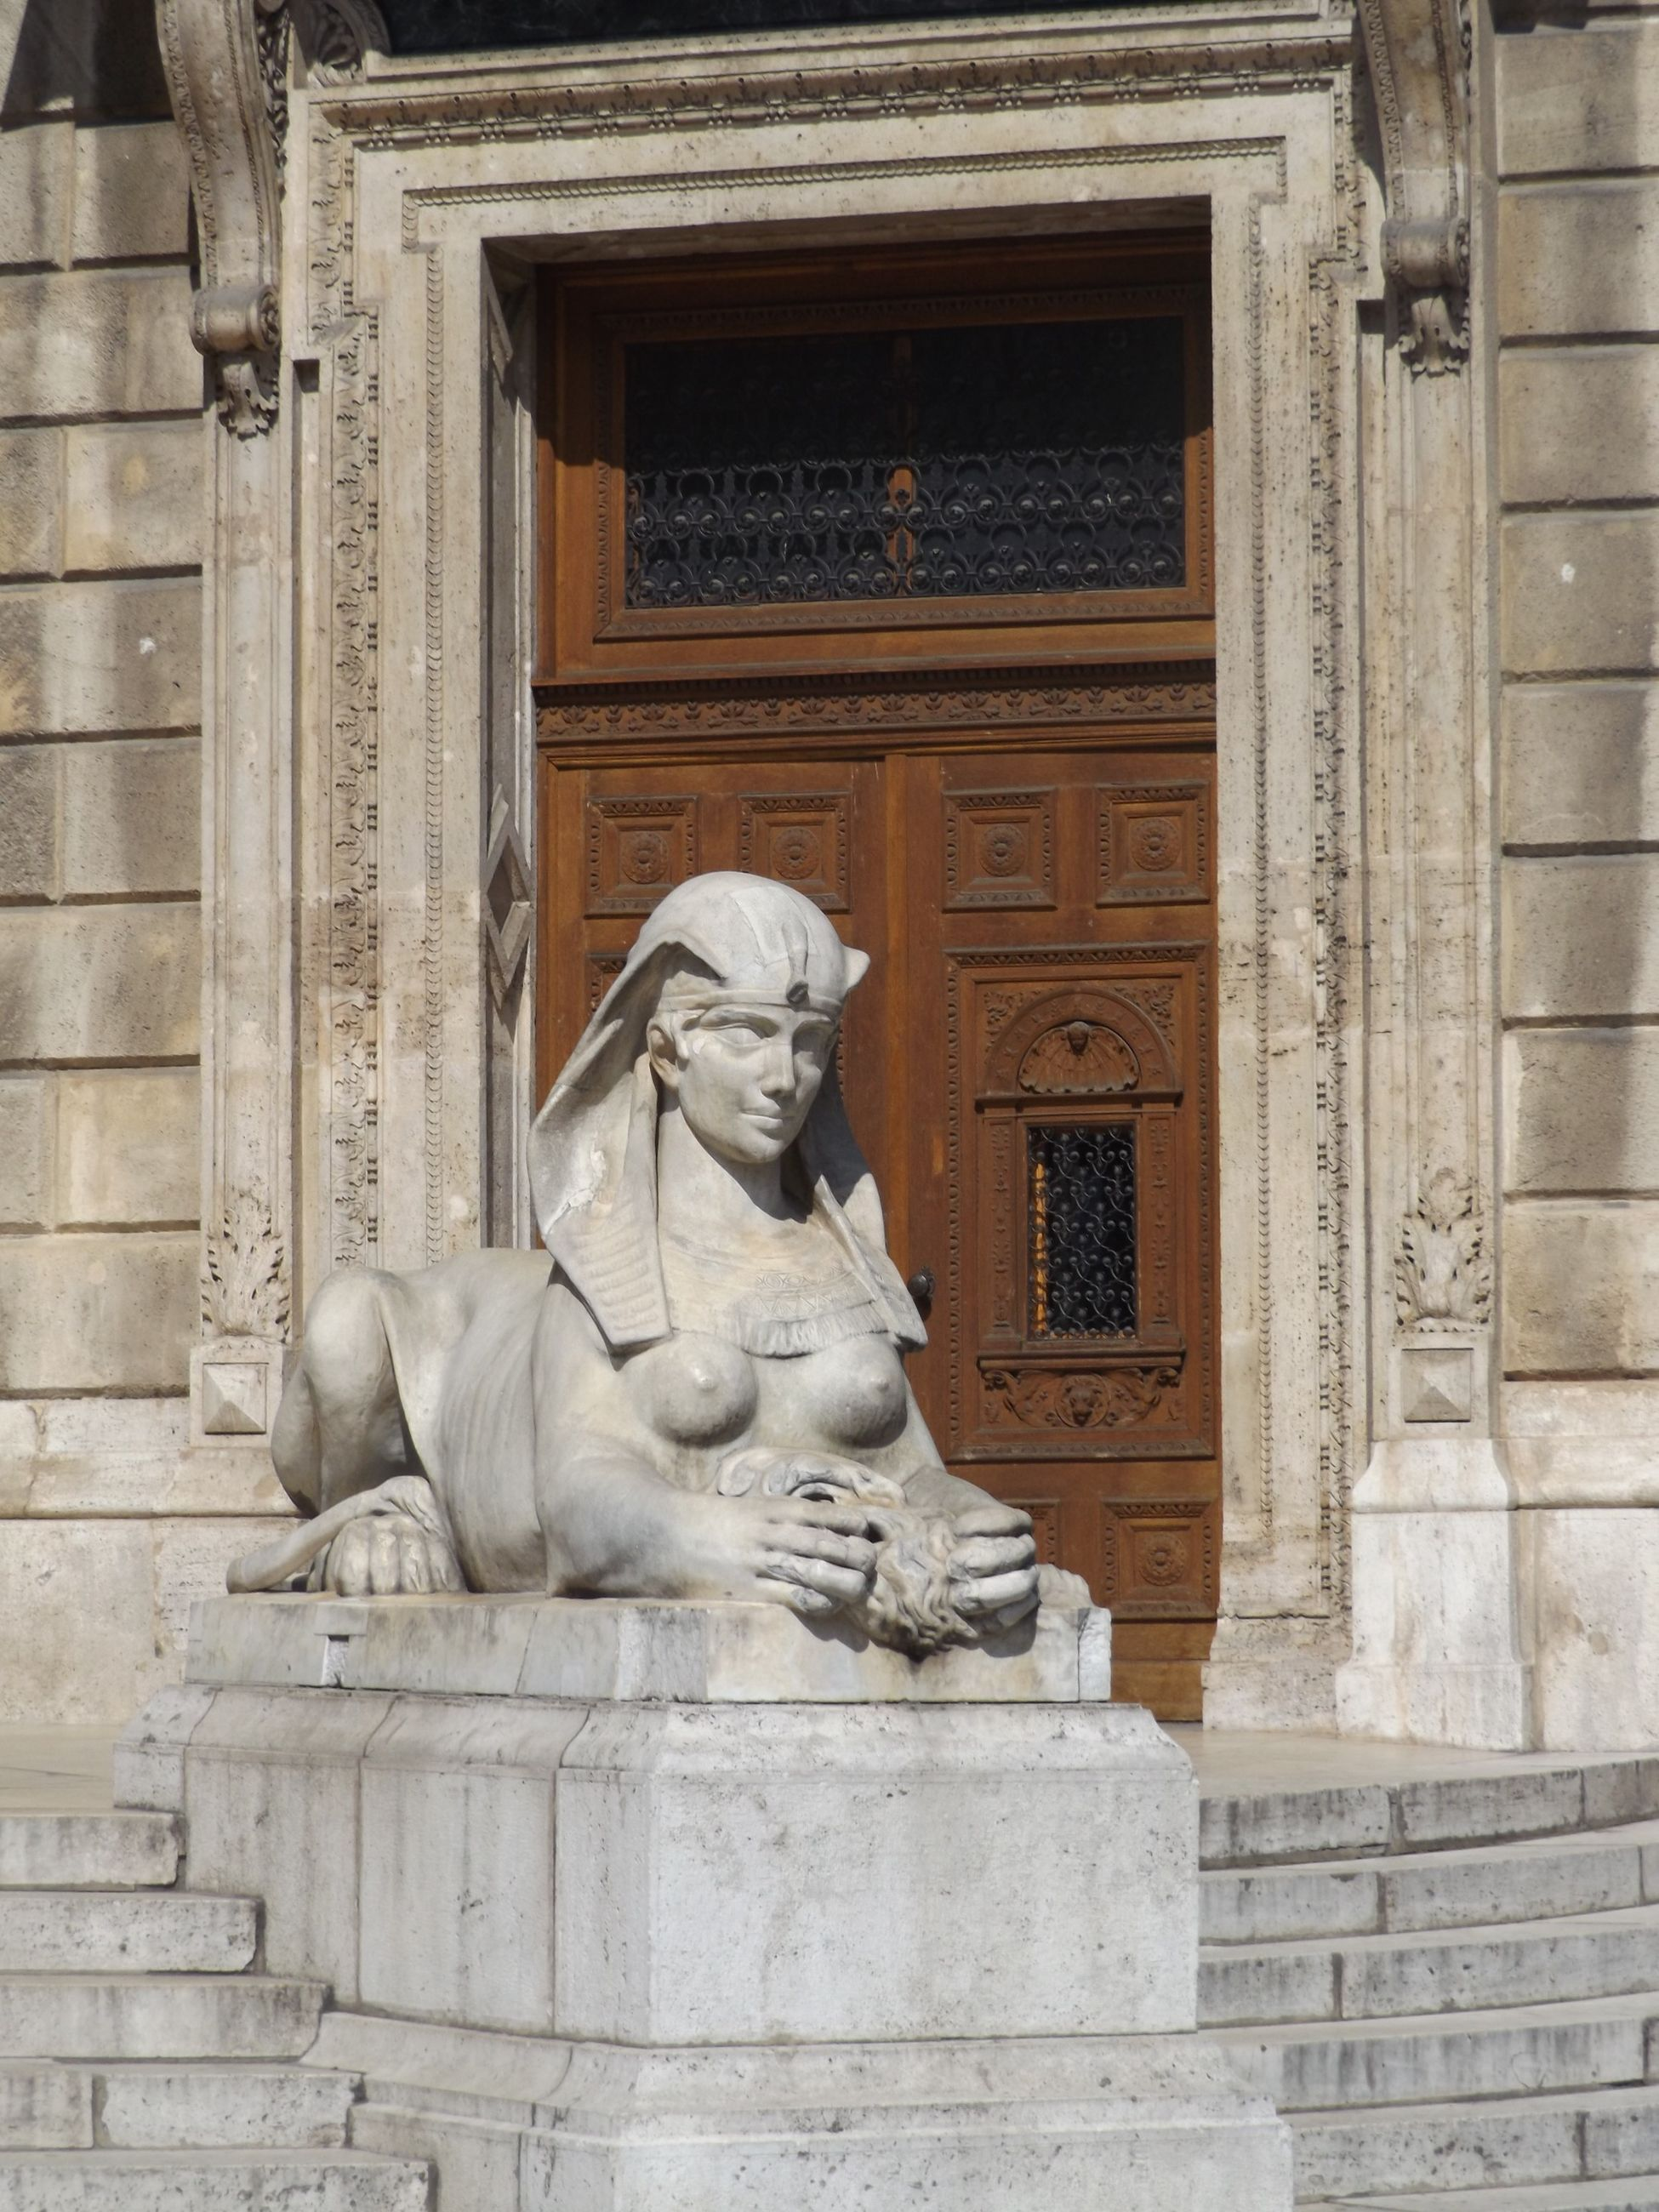 statue, art and craft, sculpture, human representation, architecture, art, built structure, building exterior, creativity, animal representation, carving - craft product, building, day, outdoors, history, low angle view, window, no people